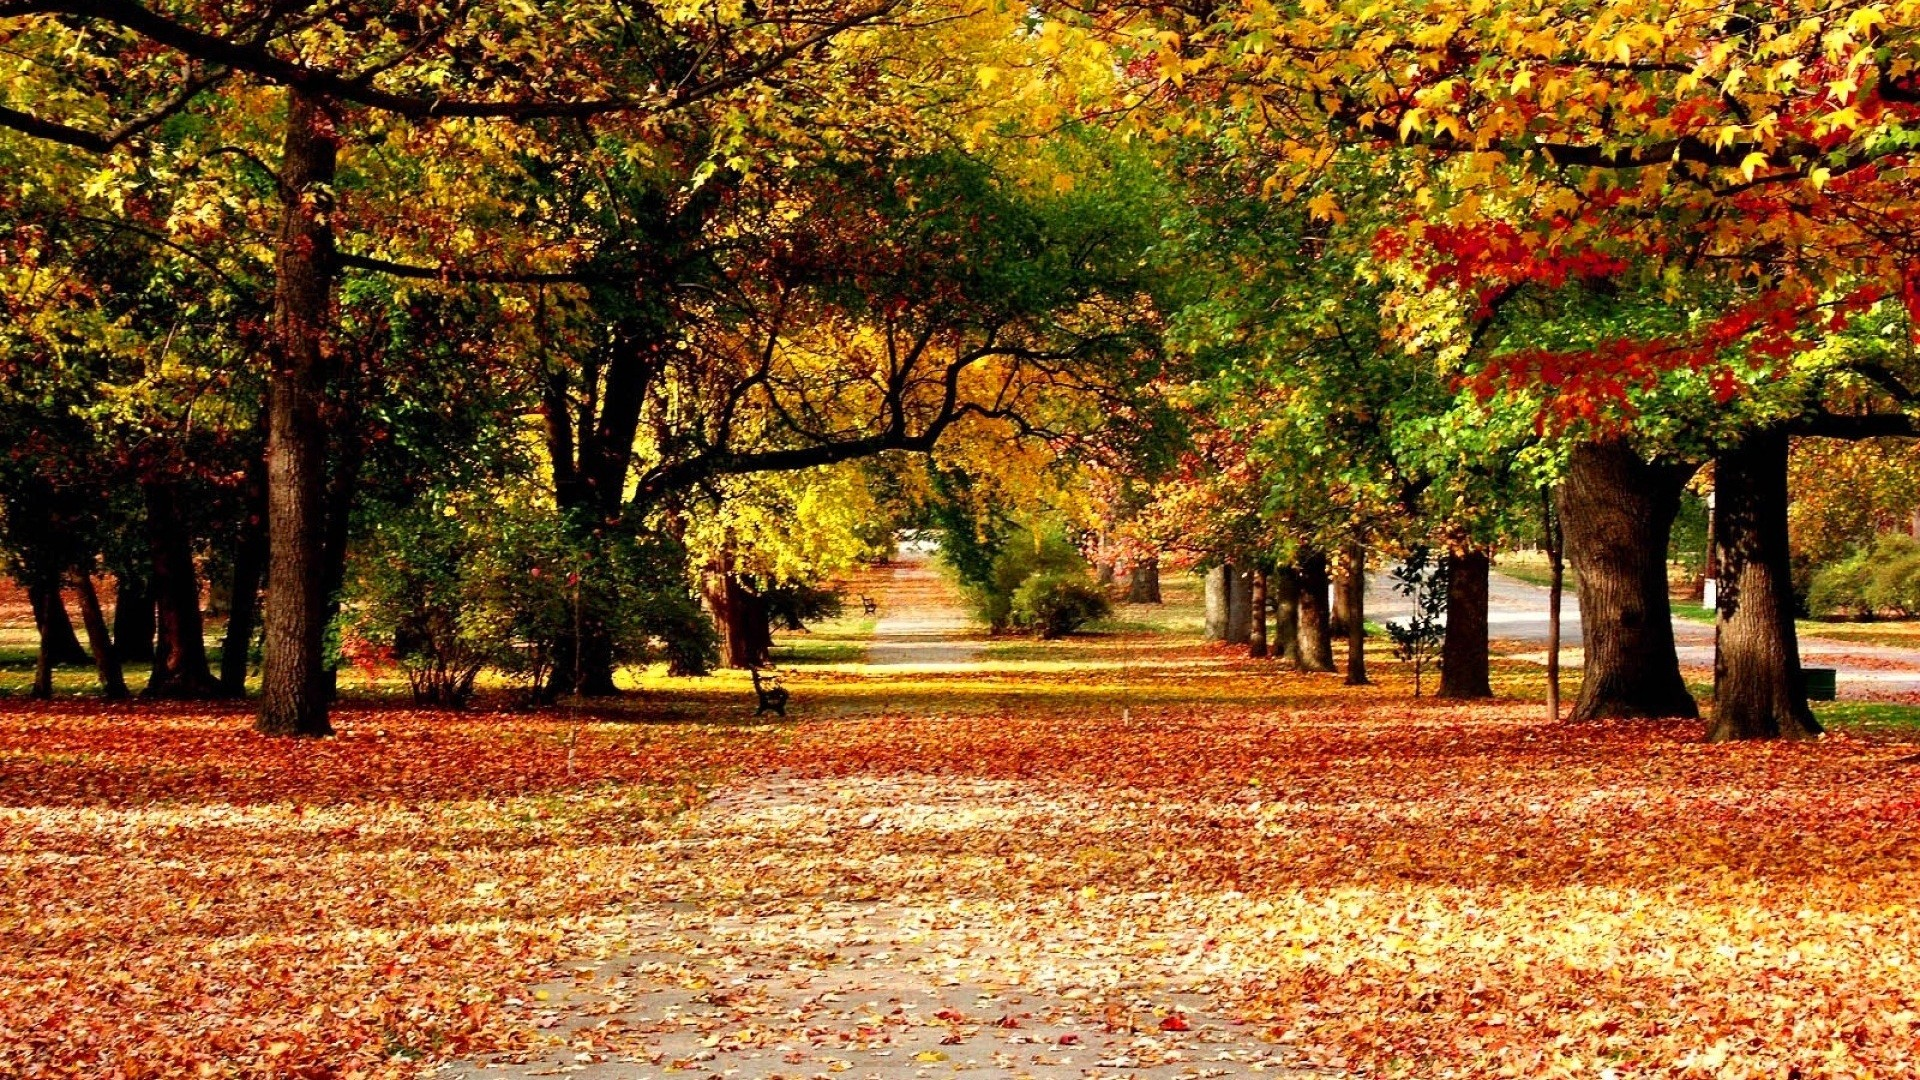 Hd Fall Nature Wallpapers